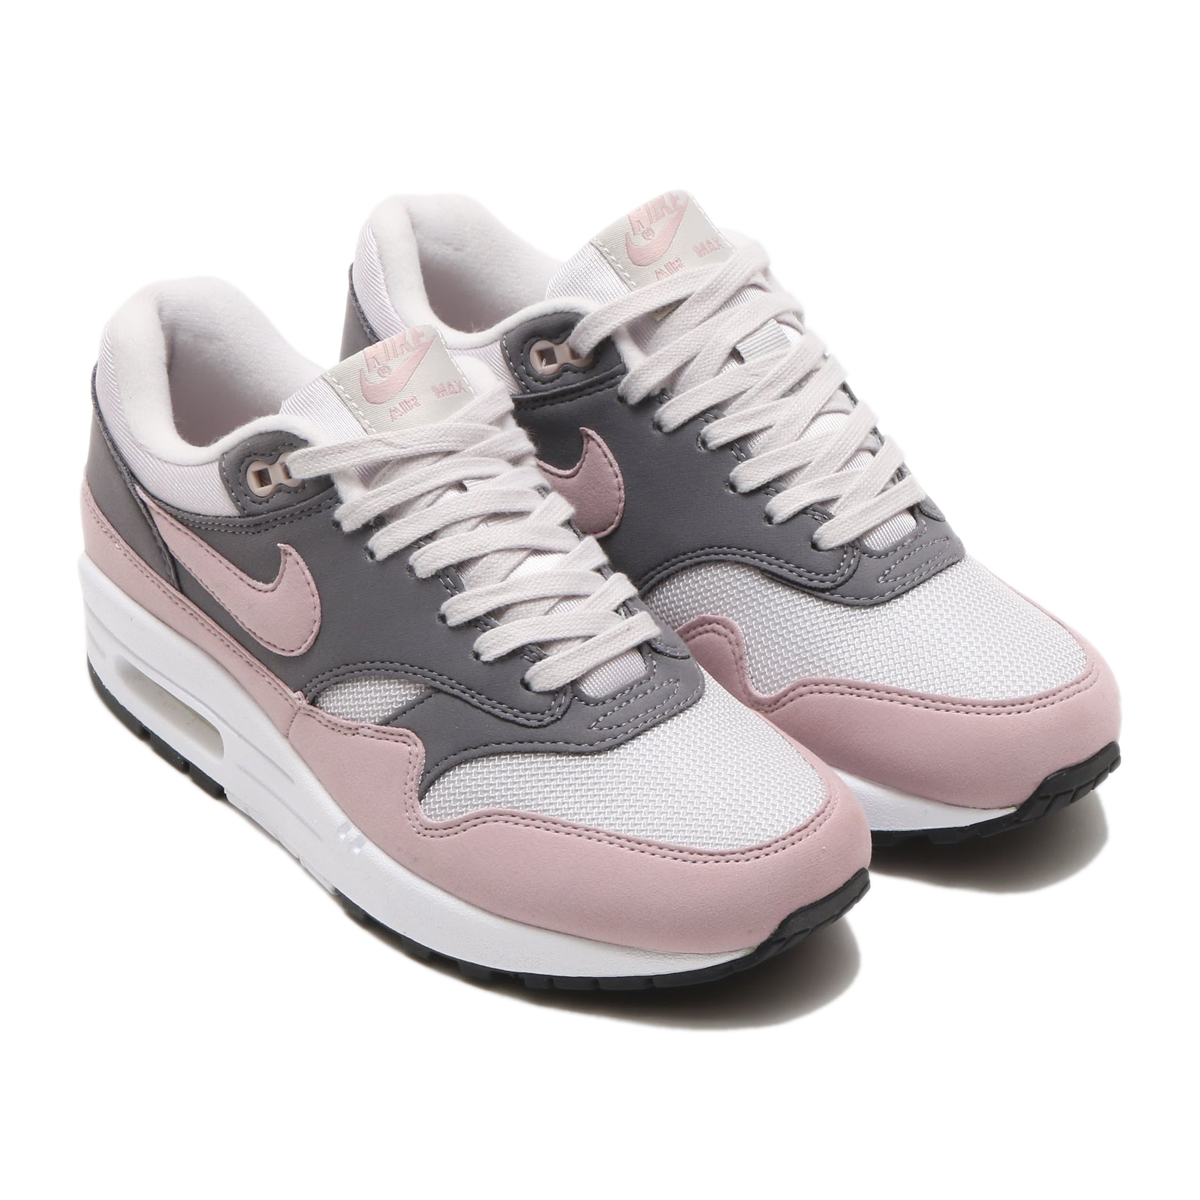 the best attitude f436a ce5fa ... NIKE WMNS AIR MAX 1 (Nike women Air Max 1) (VAST GREY  ...